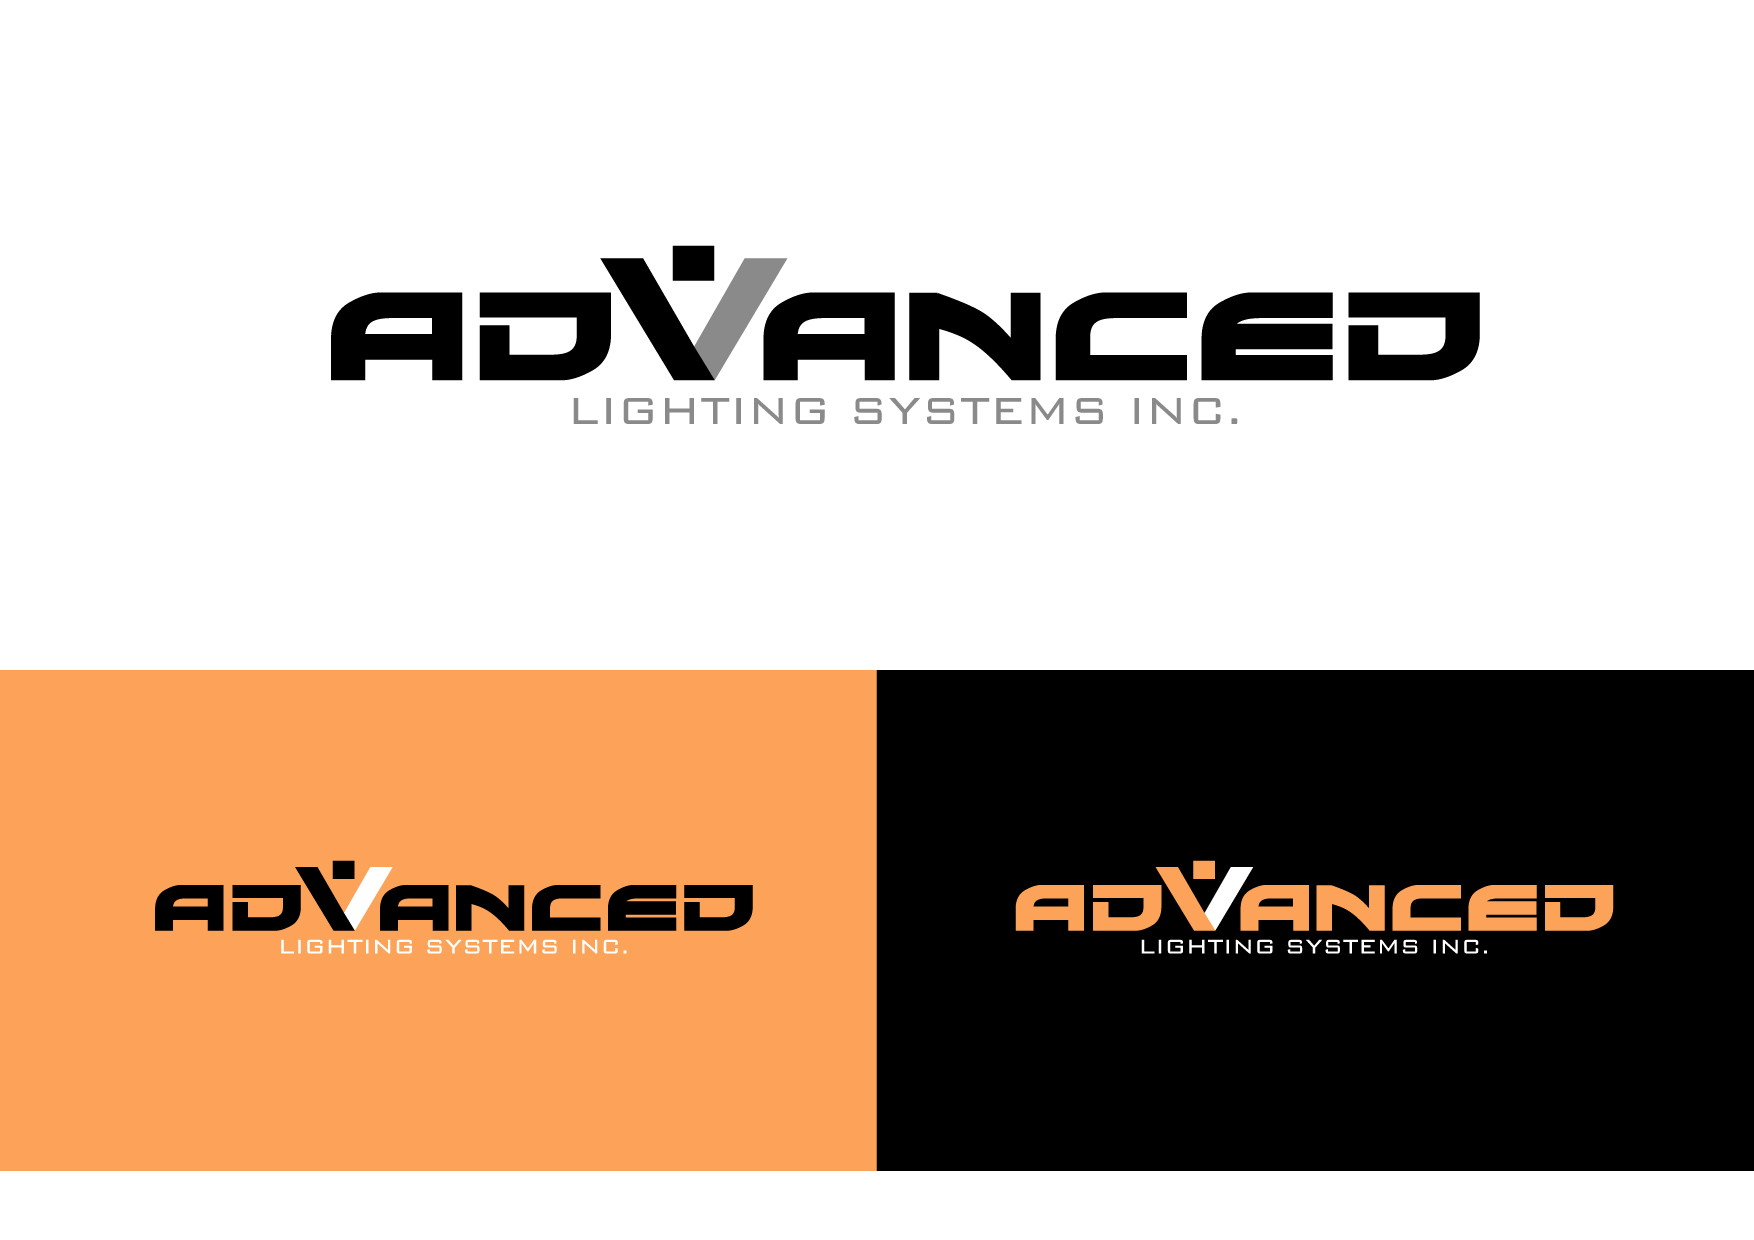 Logo Design by Wilfredo Mendoza - Entry No. 66 in the Logo Design Contest New Logo Design Needed for  Company Advanced Lighting Systems Inc..